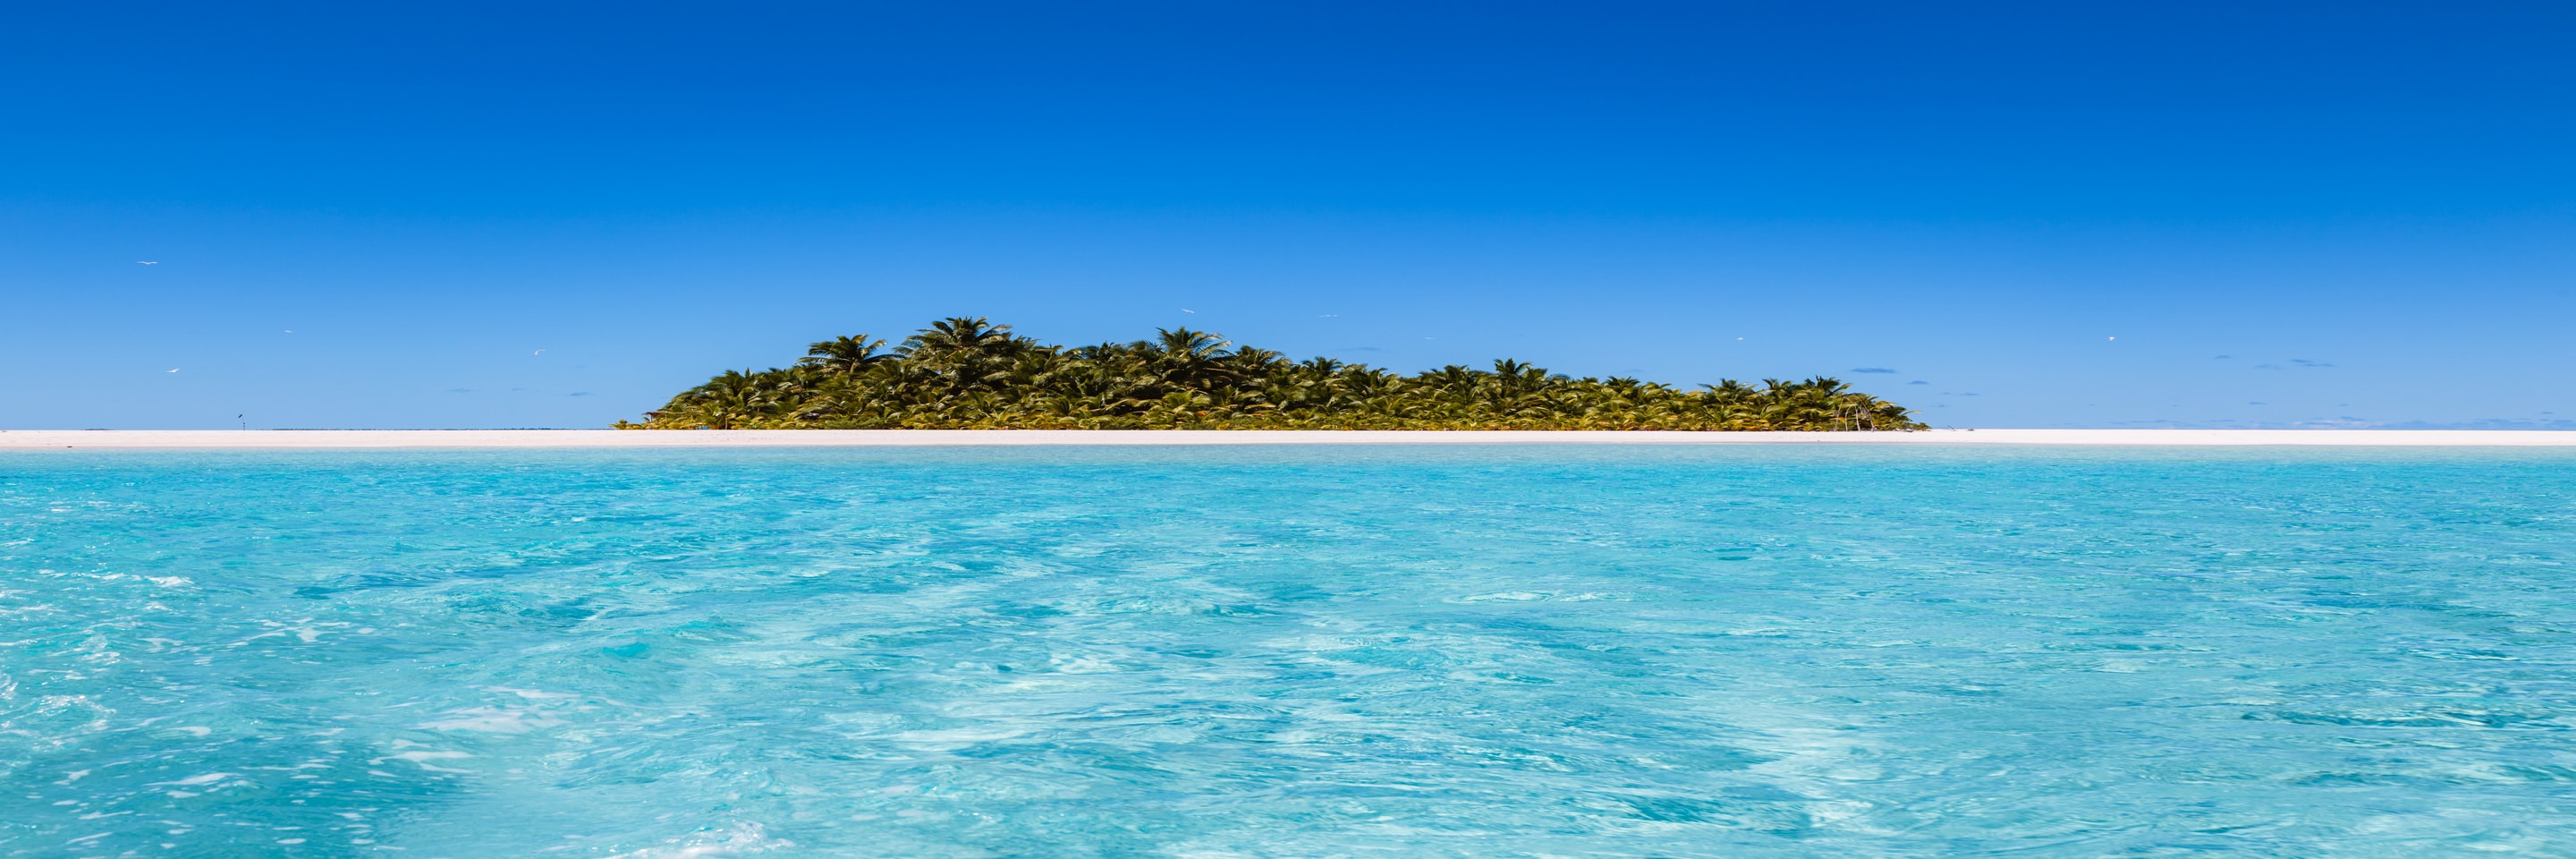 A deserted tropical island, with lush greenery, surrounded by clear blue waters.